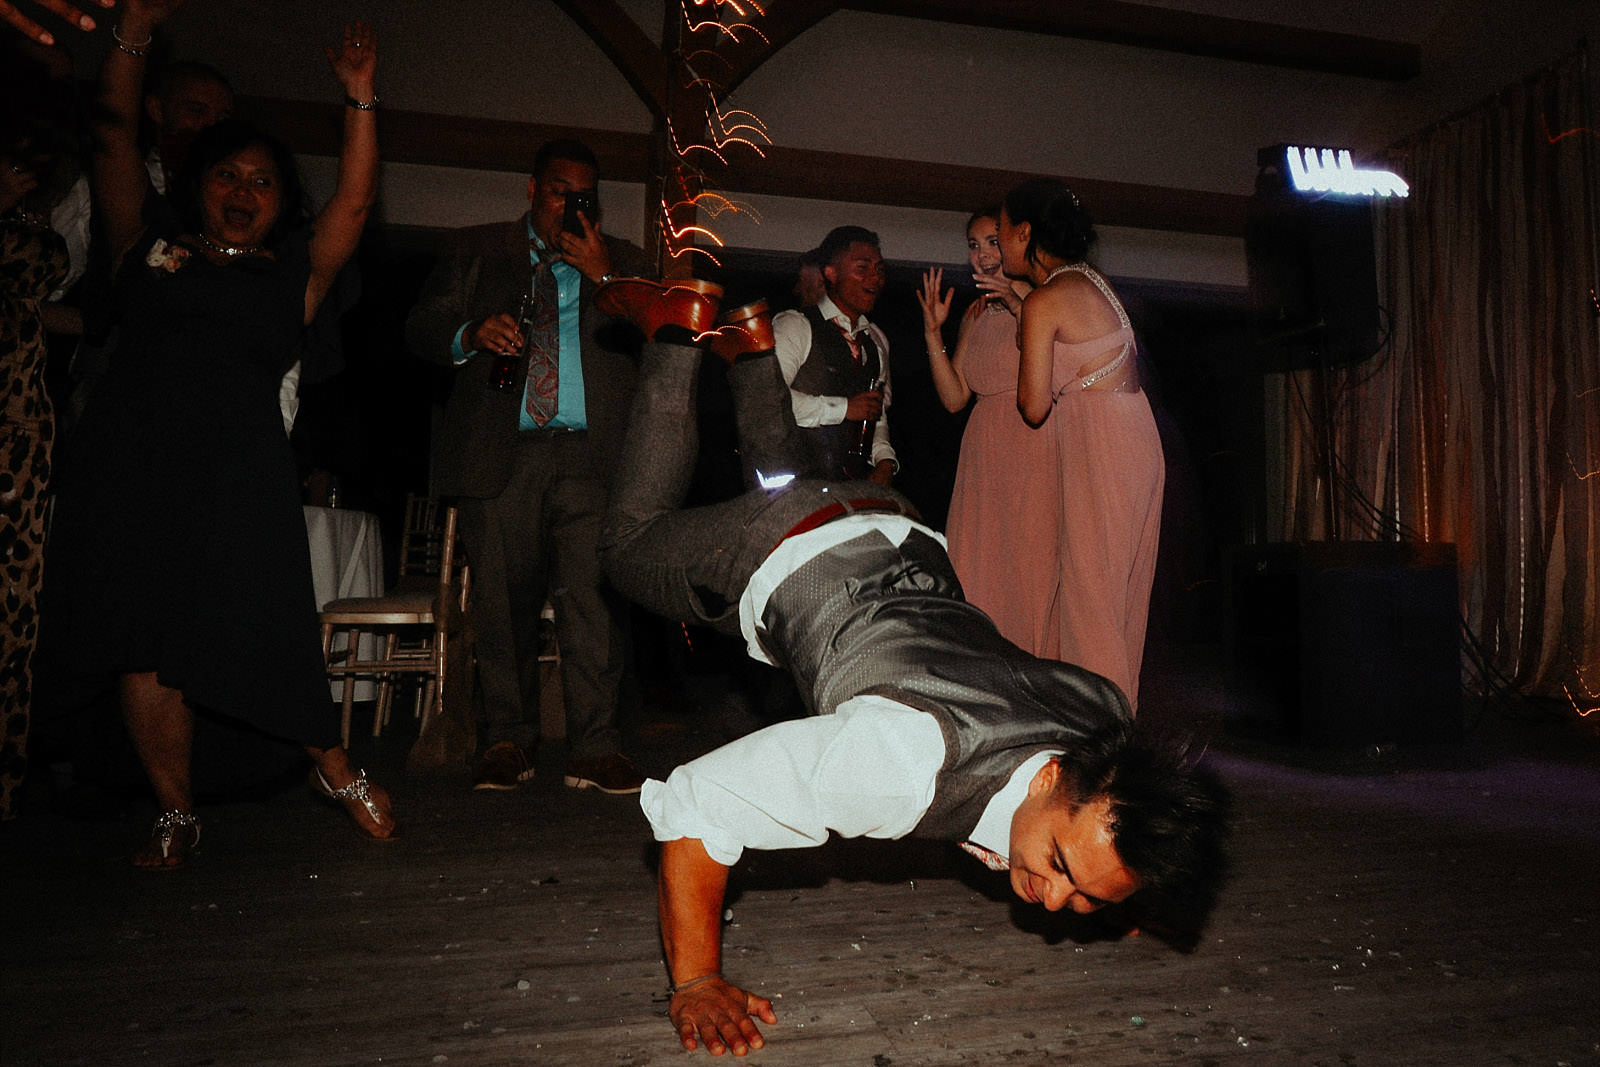 groom doing the worm at a wedding